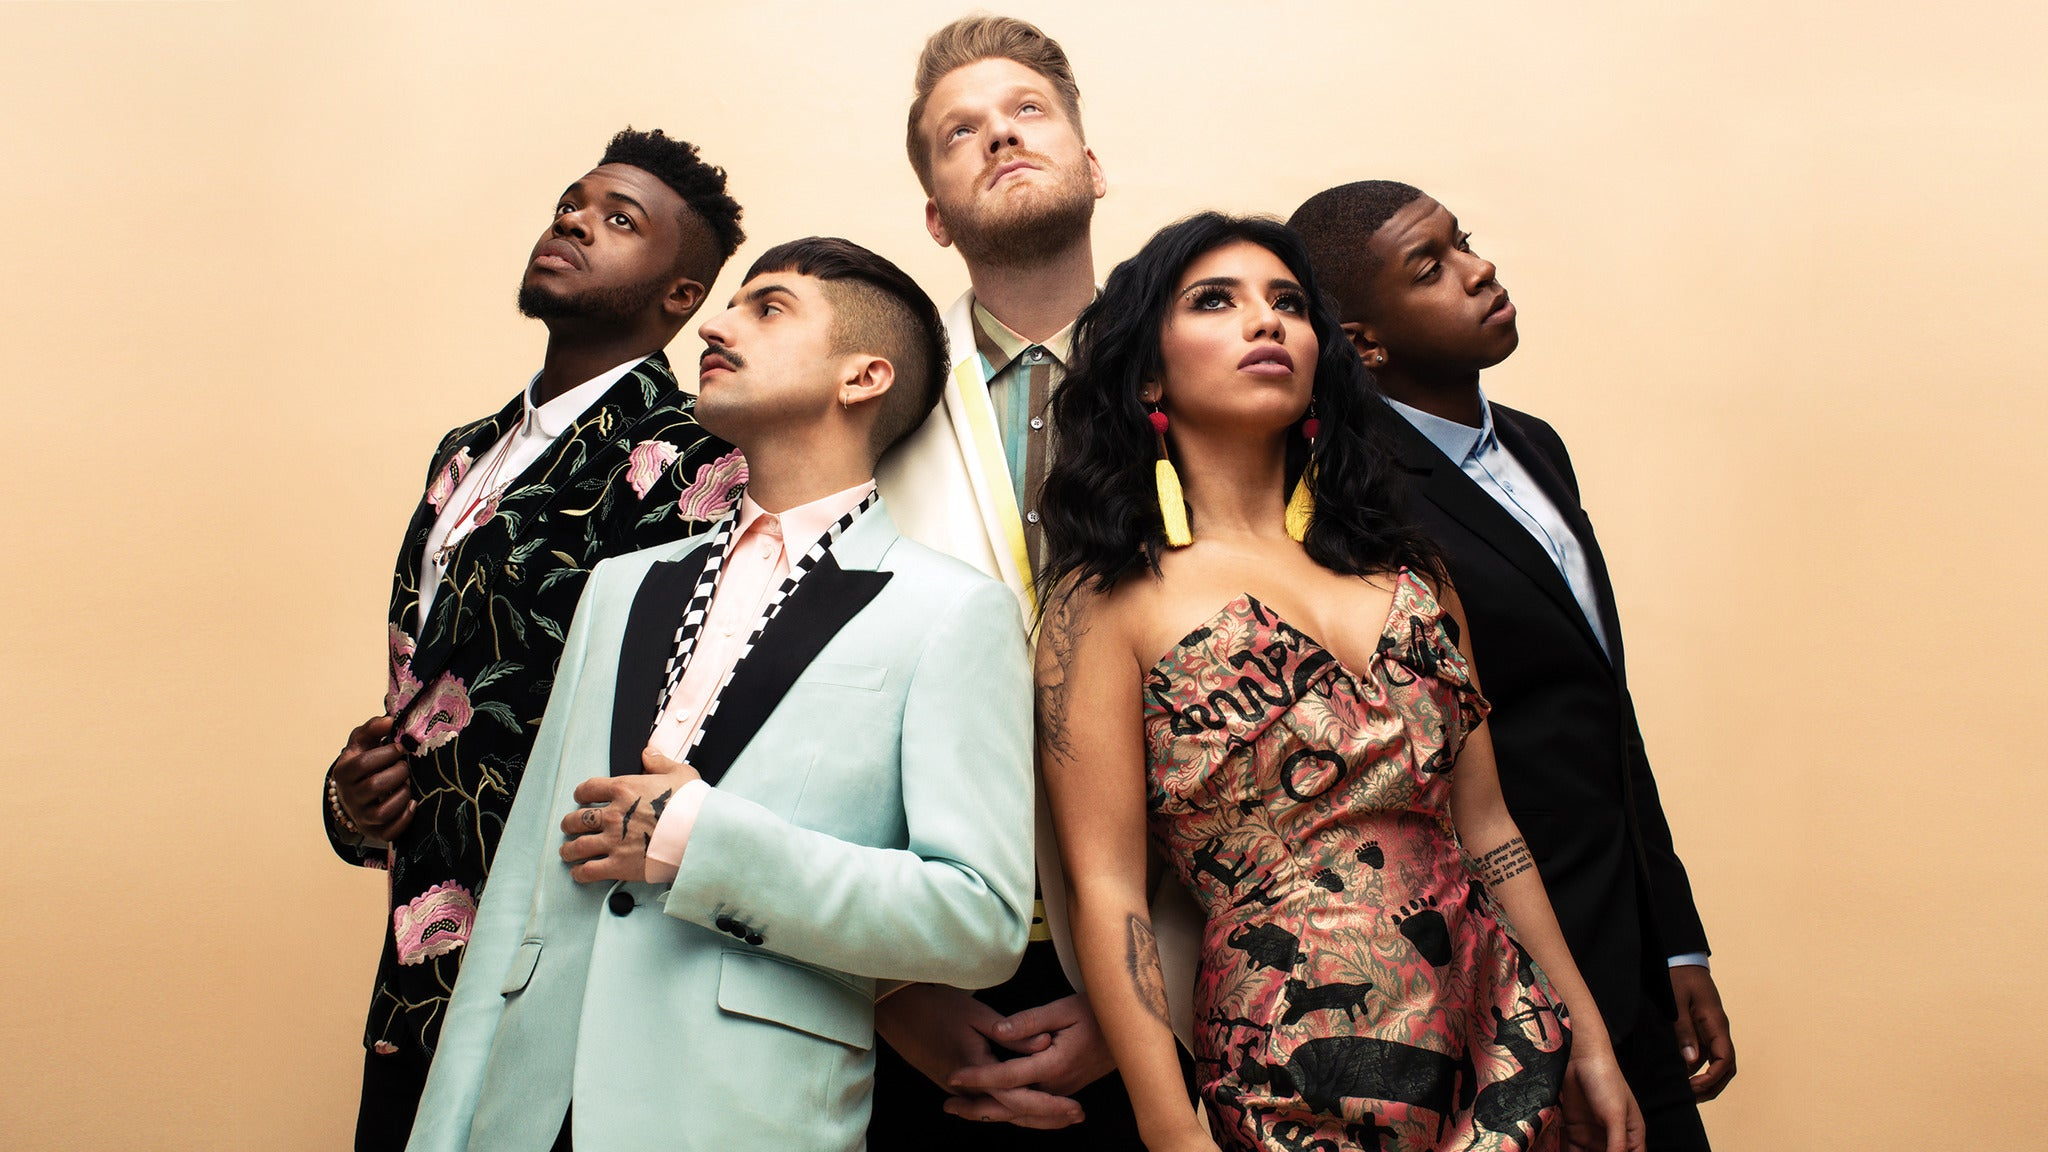 Pentatonix with special guests Echosmith and Calum Scott